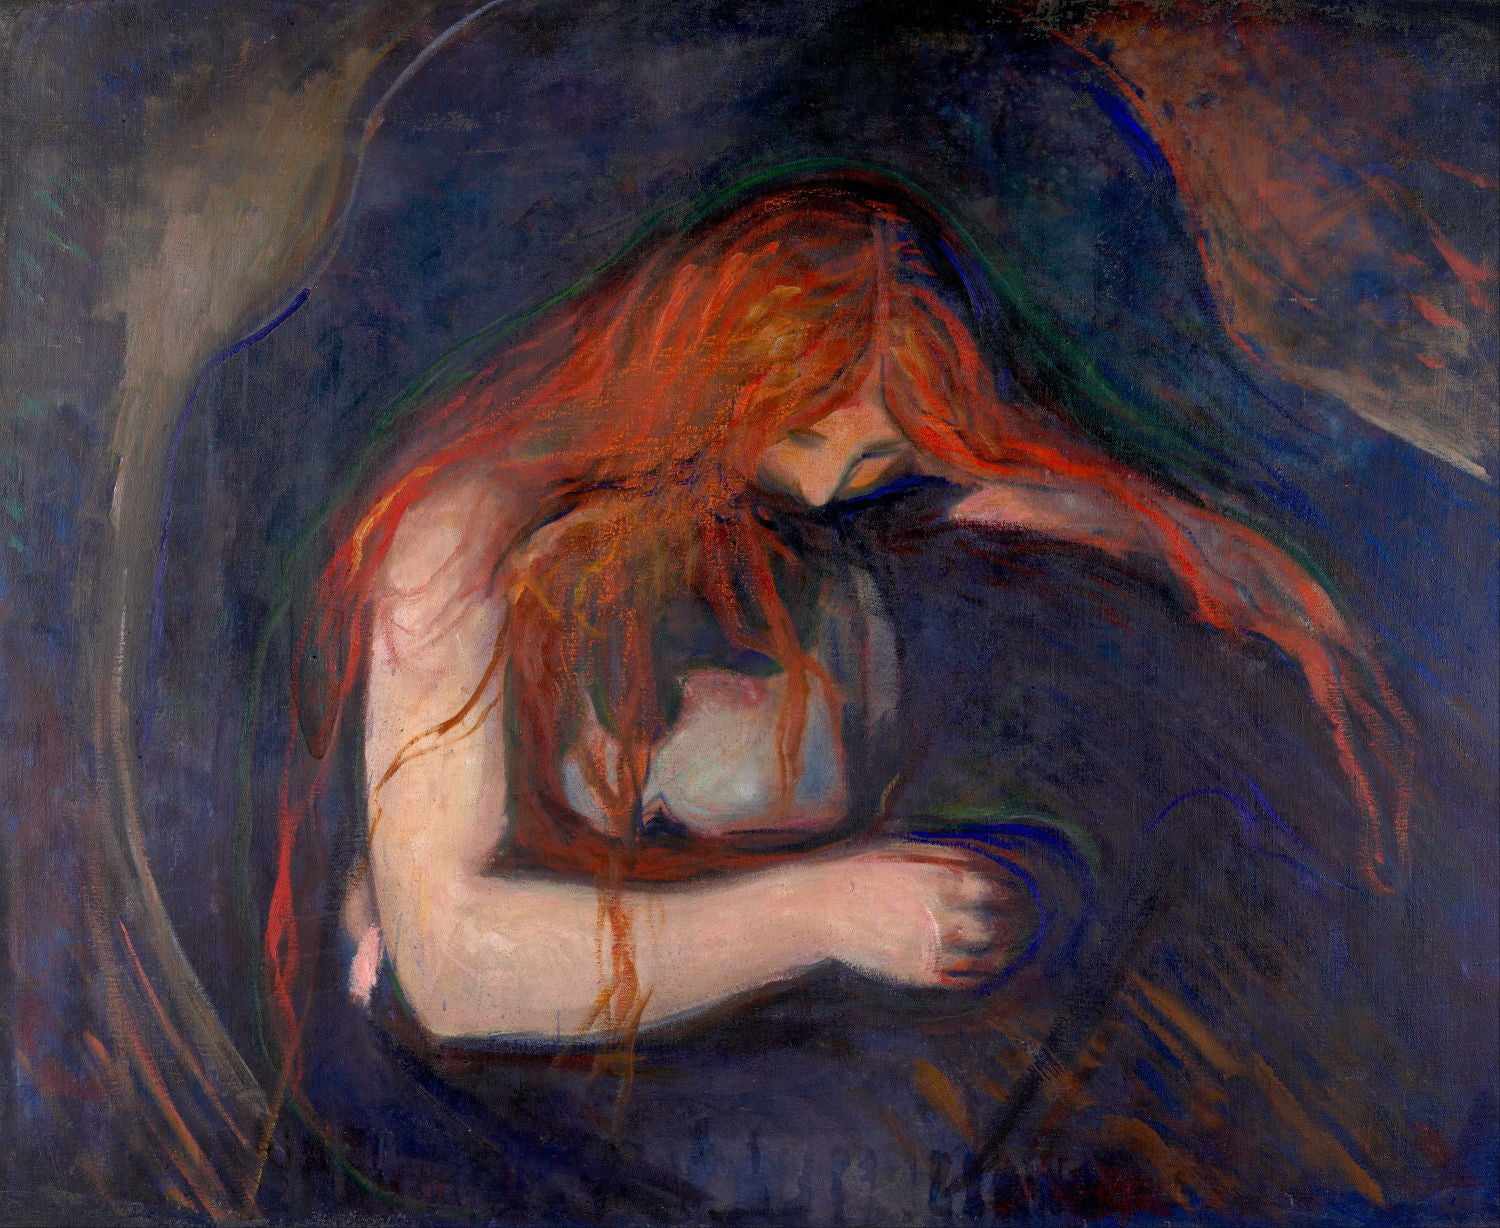 Edvard Munch | Buy Posters, Frames, Canvas, Digital Art & Large Size Prints Of The Famous Modern Master's Artworks